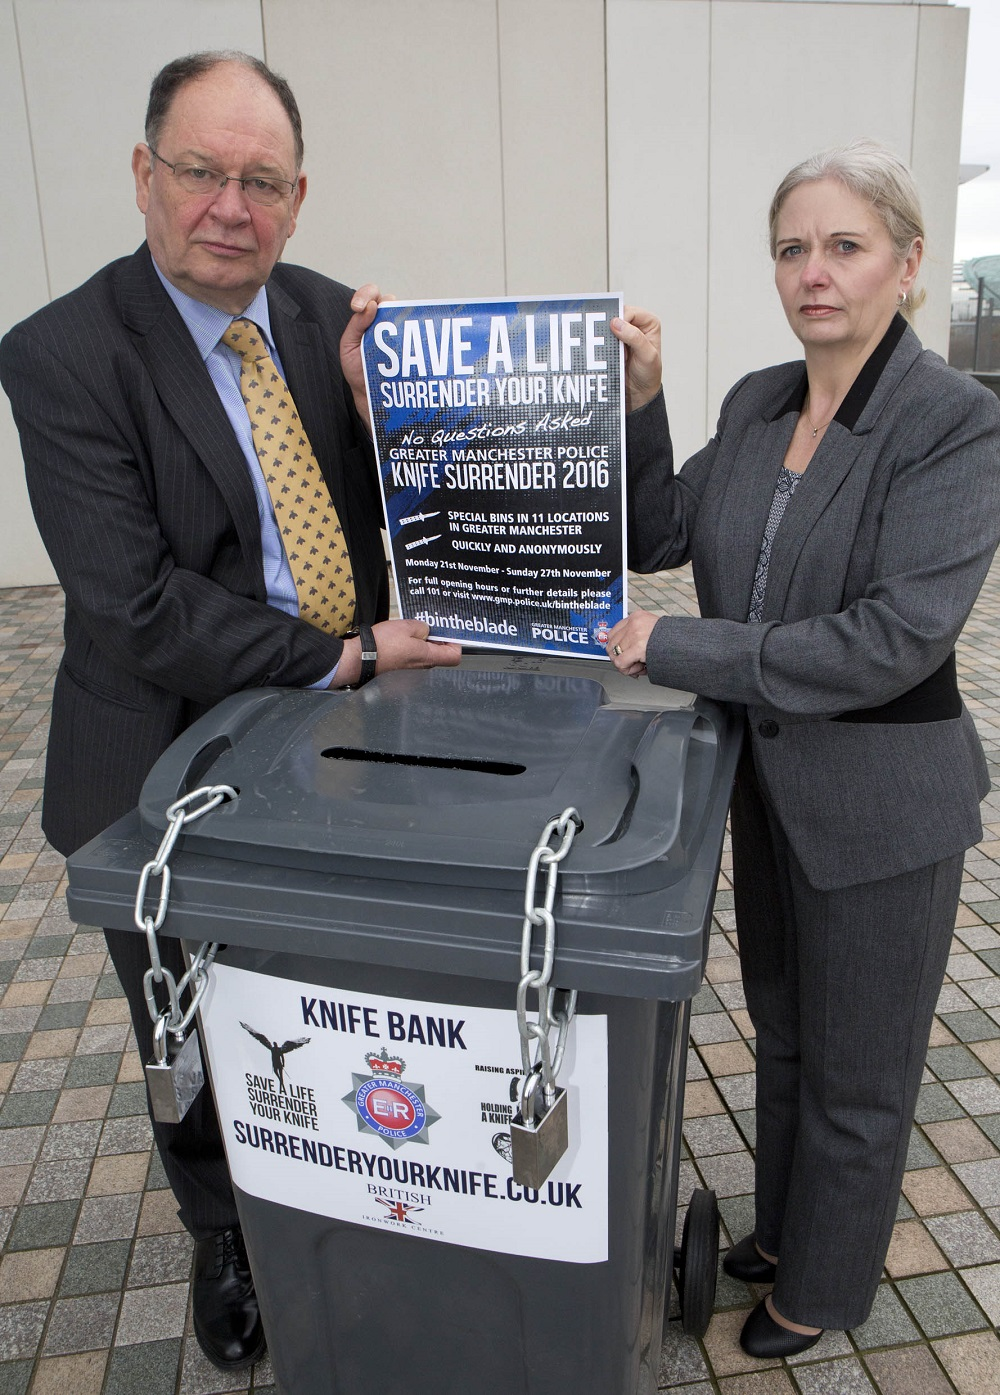 deputy-police-and-crime-commissioner-jim-battle-and-dci-debbie-dooley-from-the-serious-crime-division-manchester-police-3